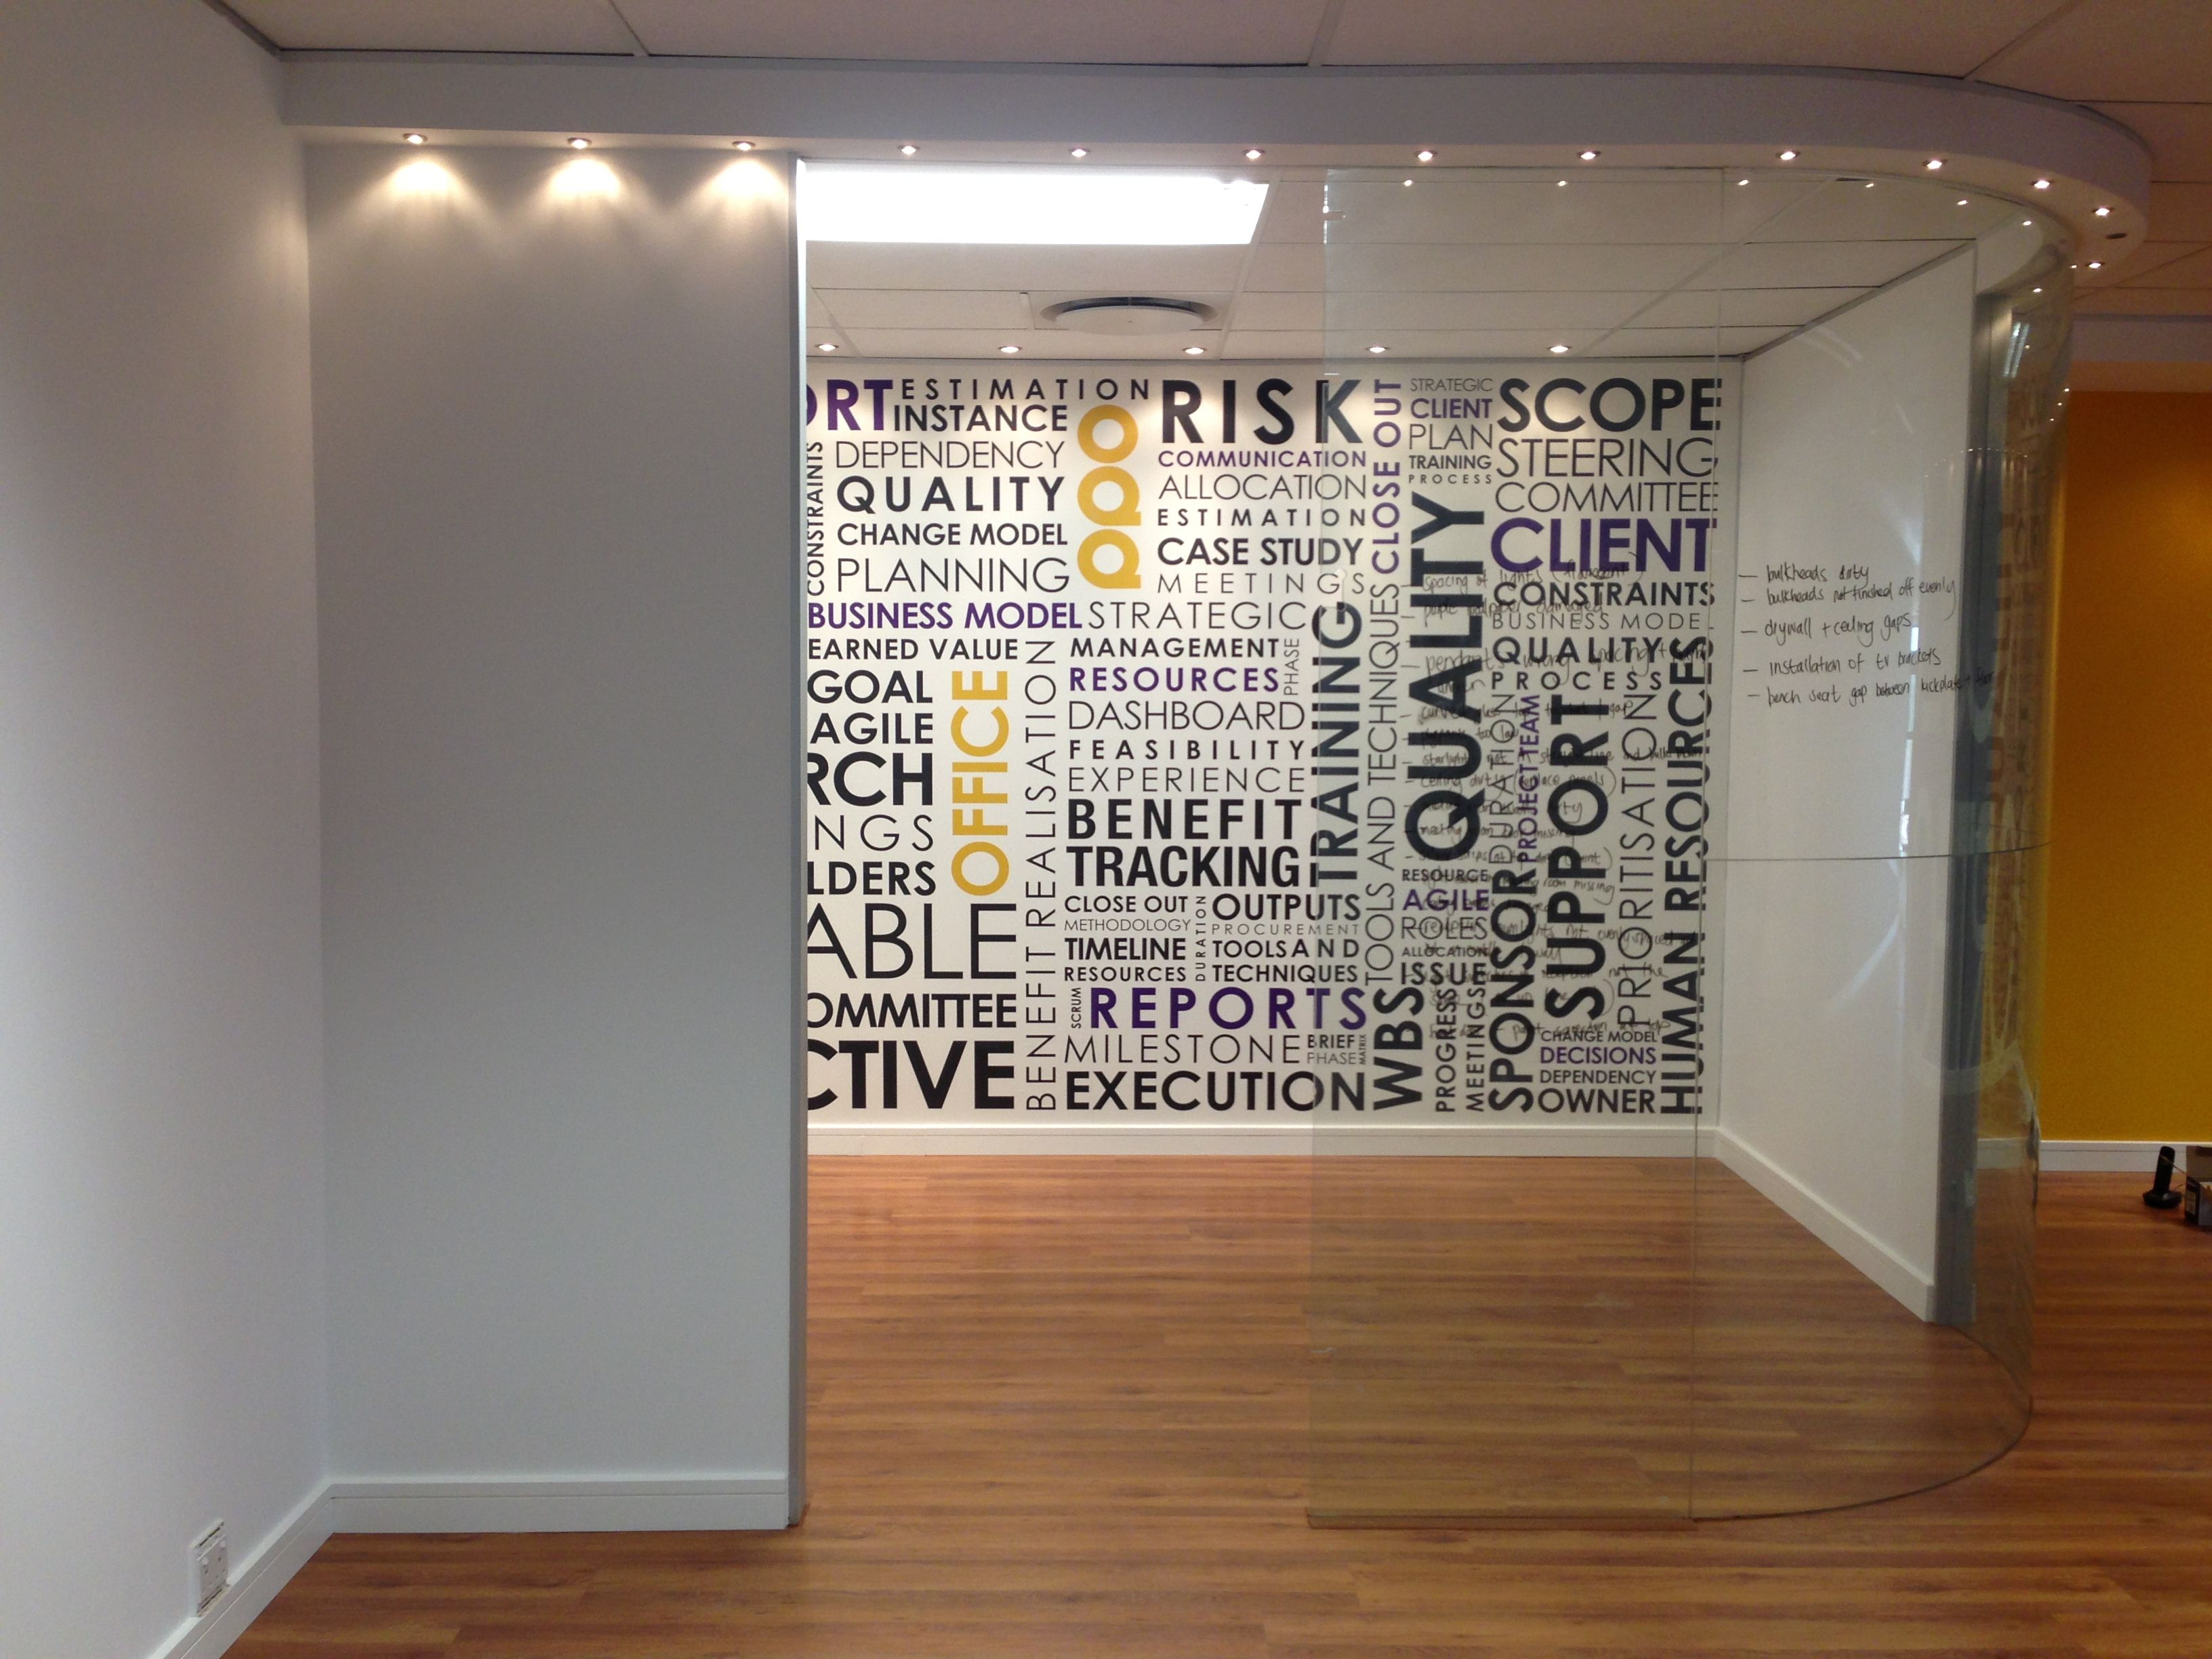 office wallpaper ideas. Personalized Office Wallpaper With Words - Cool And Inspirational- Getting Out Your Message!! Ideas D